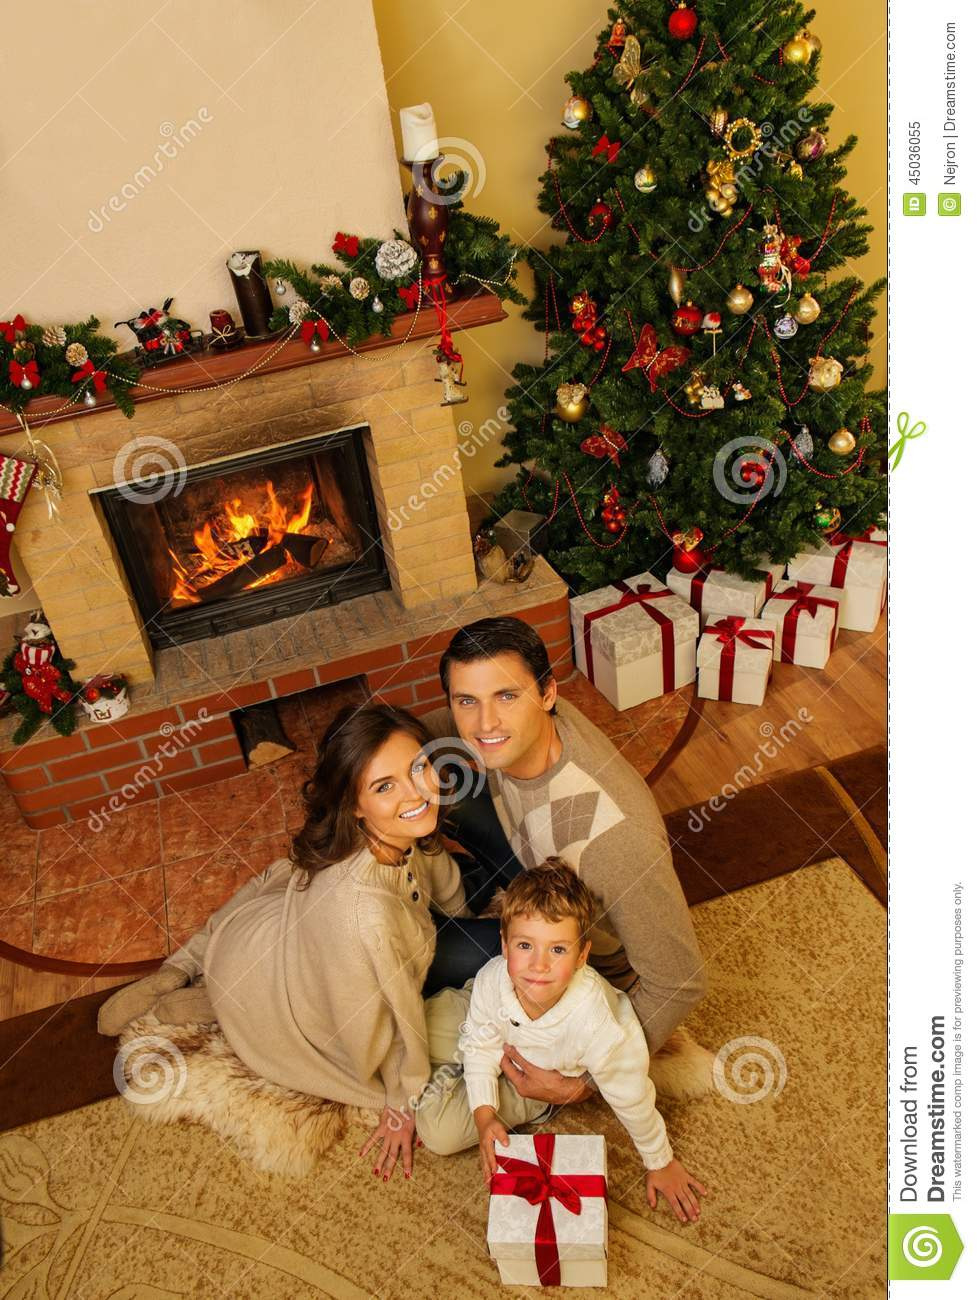 Famille dans l 39 int rieur de maison de no l photo stock for Cadeau decoration interieur